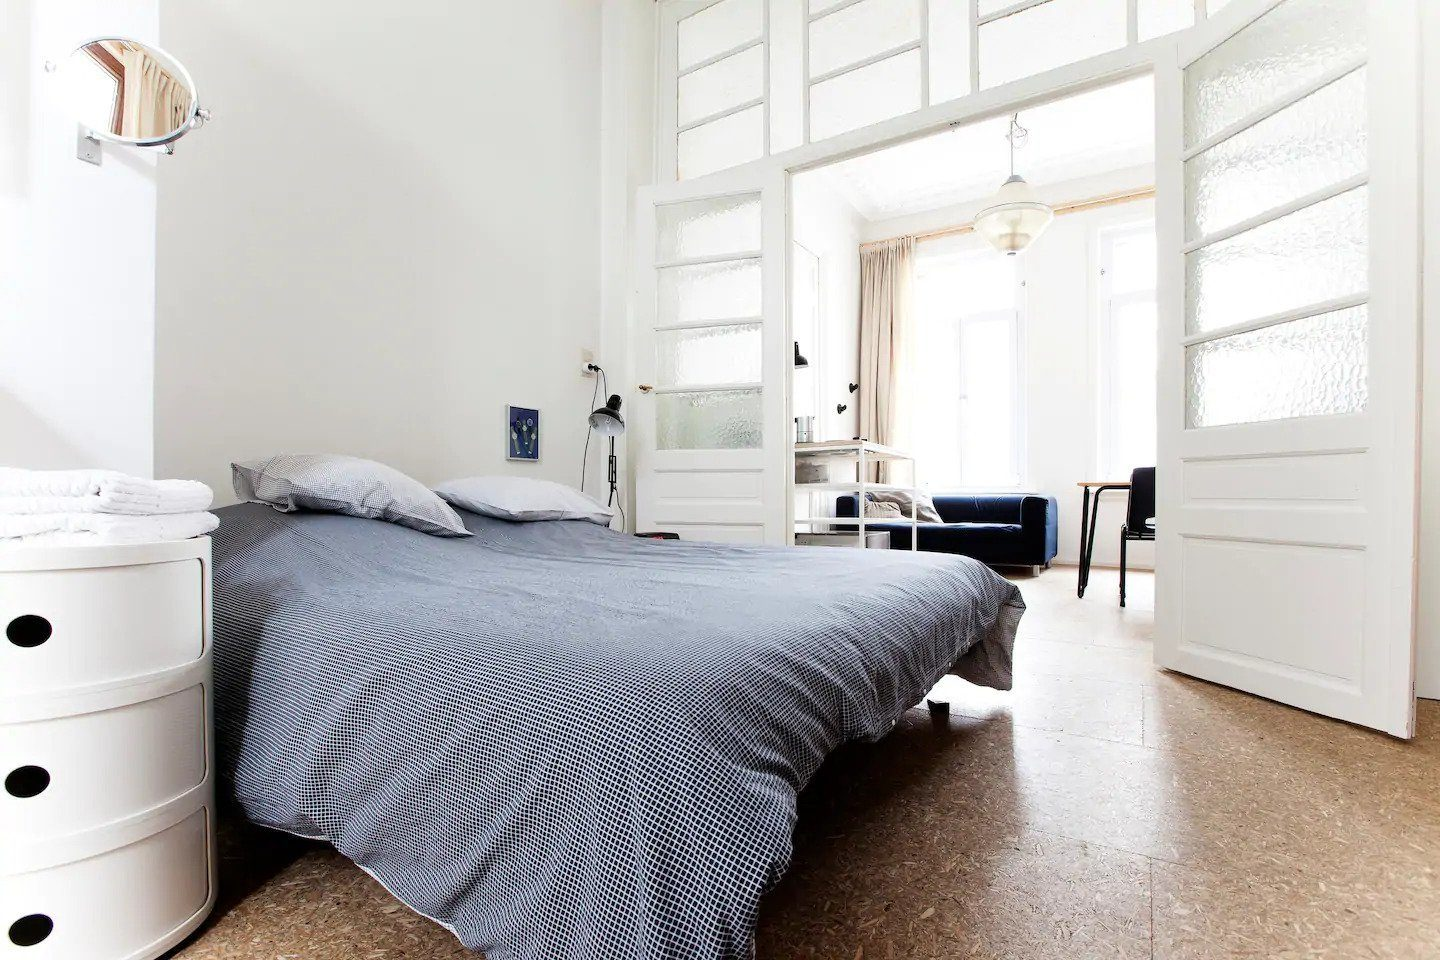 Brussels accommodation prices